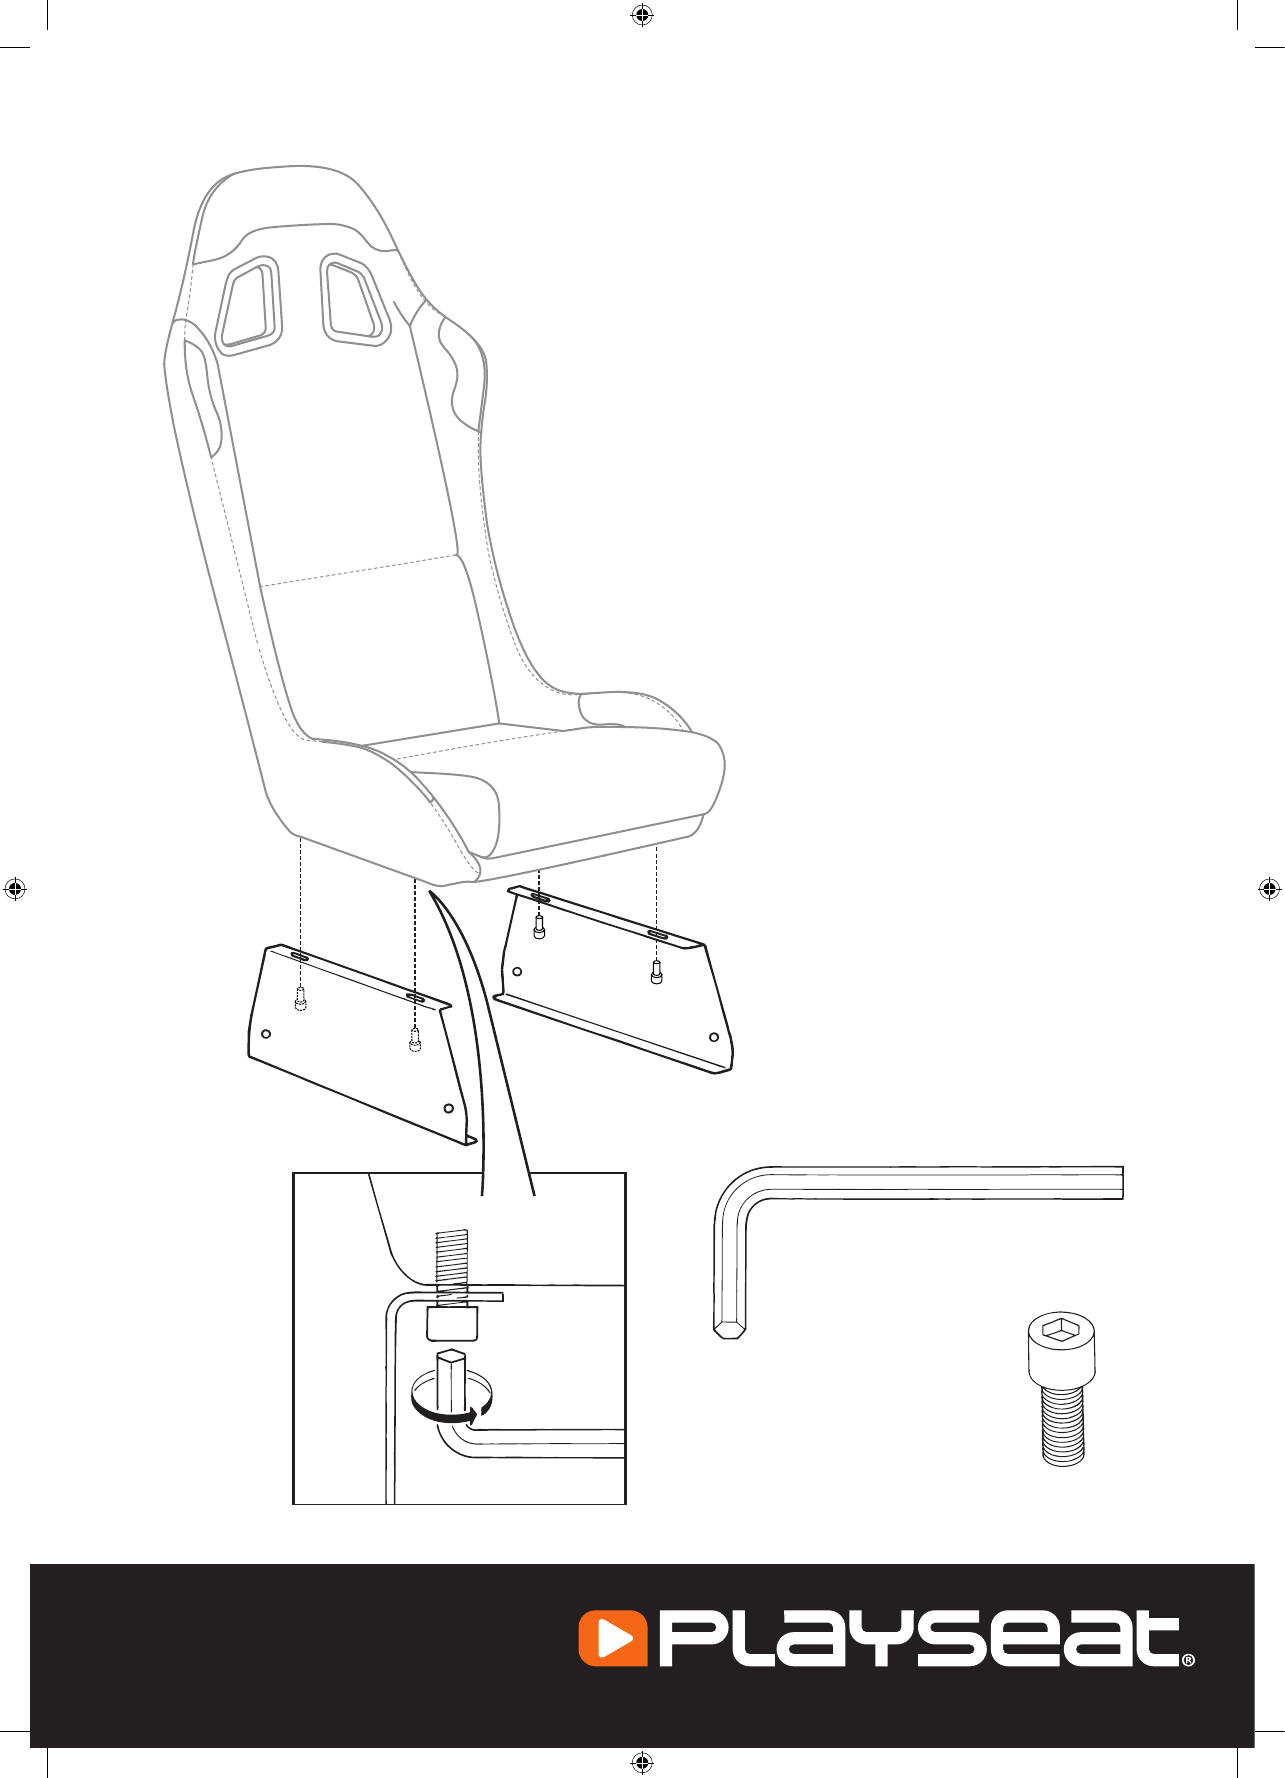 User manual Playseat Evolution (16 pages)